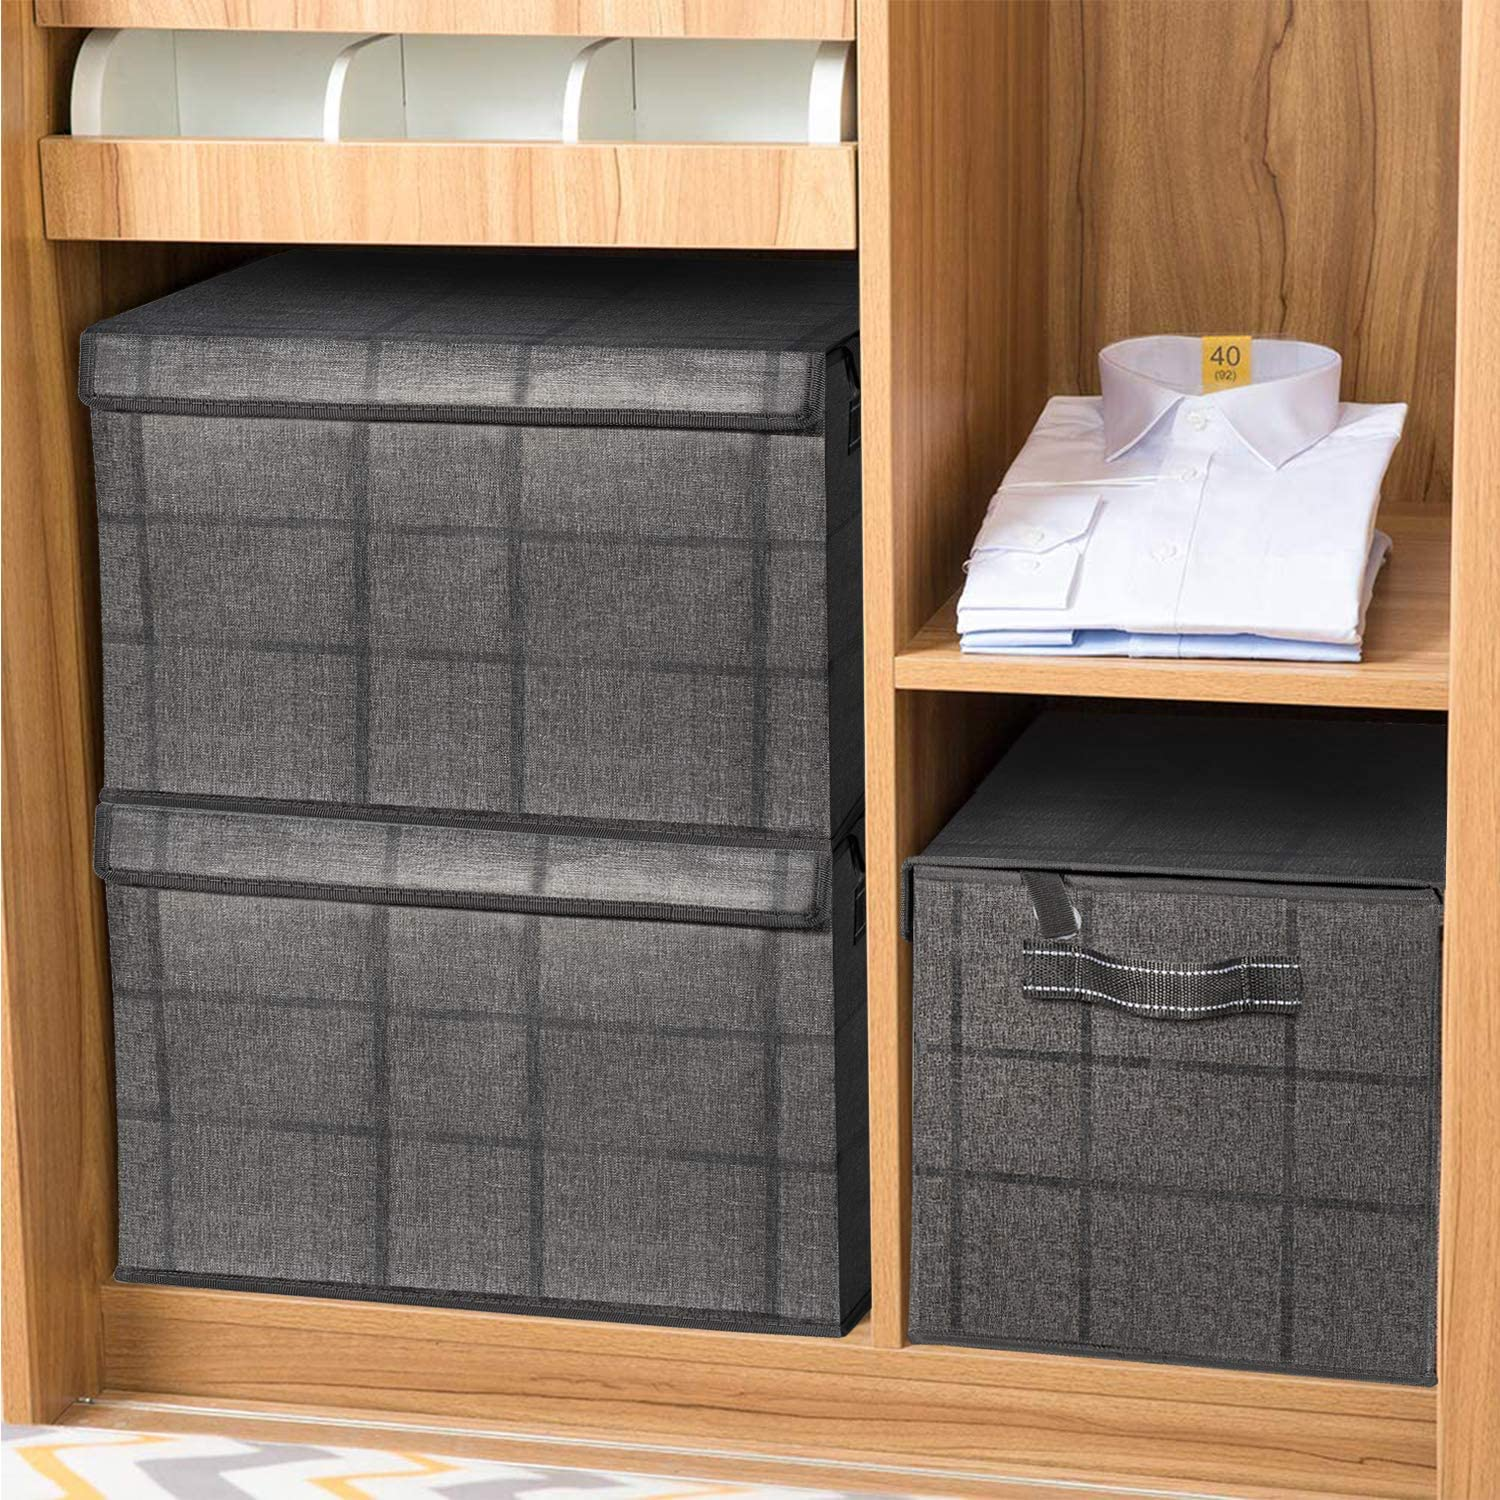 Boxes Organizer with Lids and Handles for Home Office Closet Toys Clothes Linen Sundries VENO 2 Pack Foldable Large Storage Bins Made of Recycled Material Beige//Windowpane Collapsible Cubes